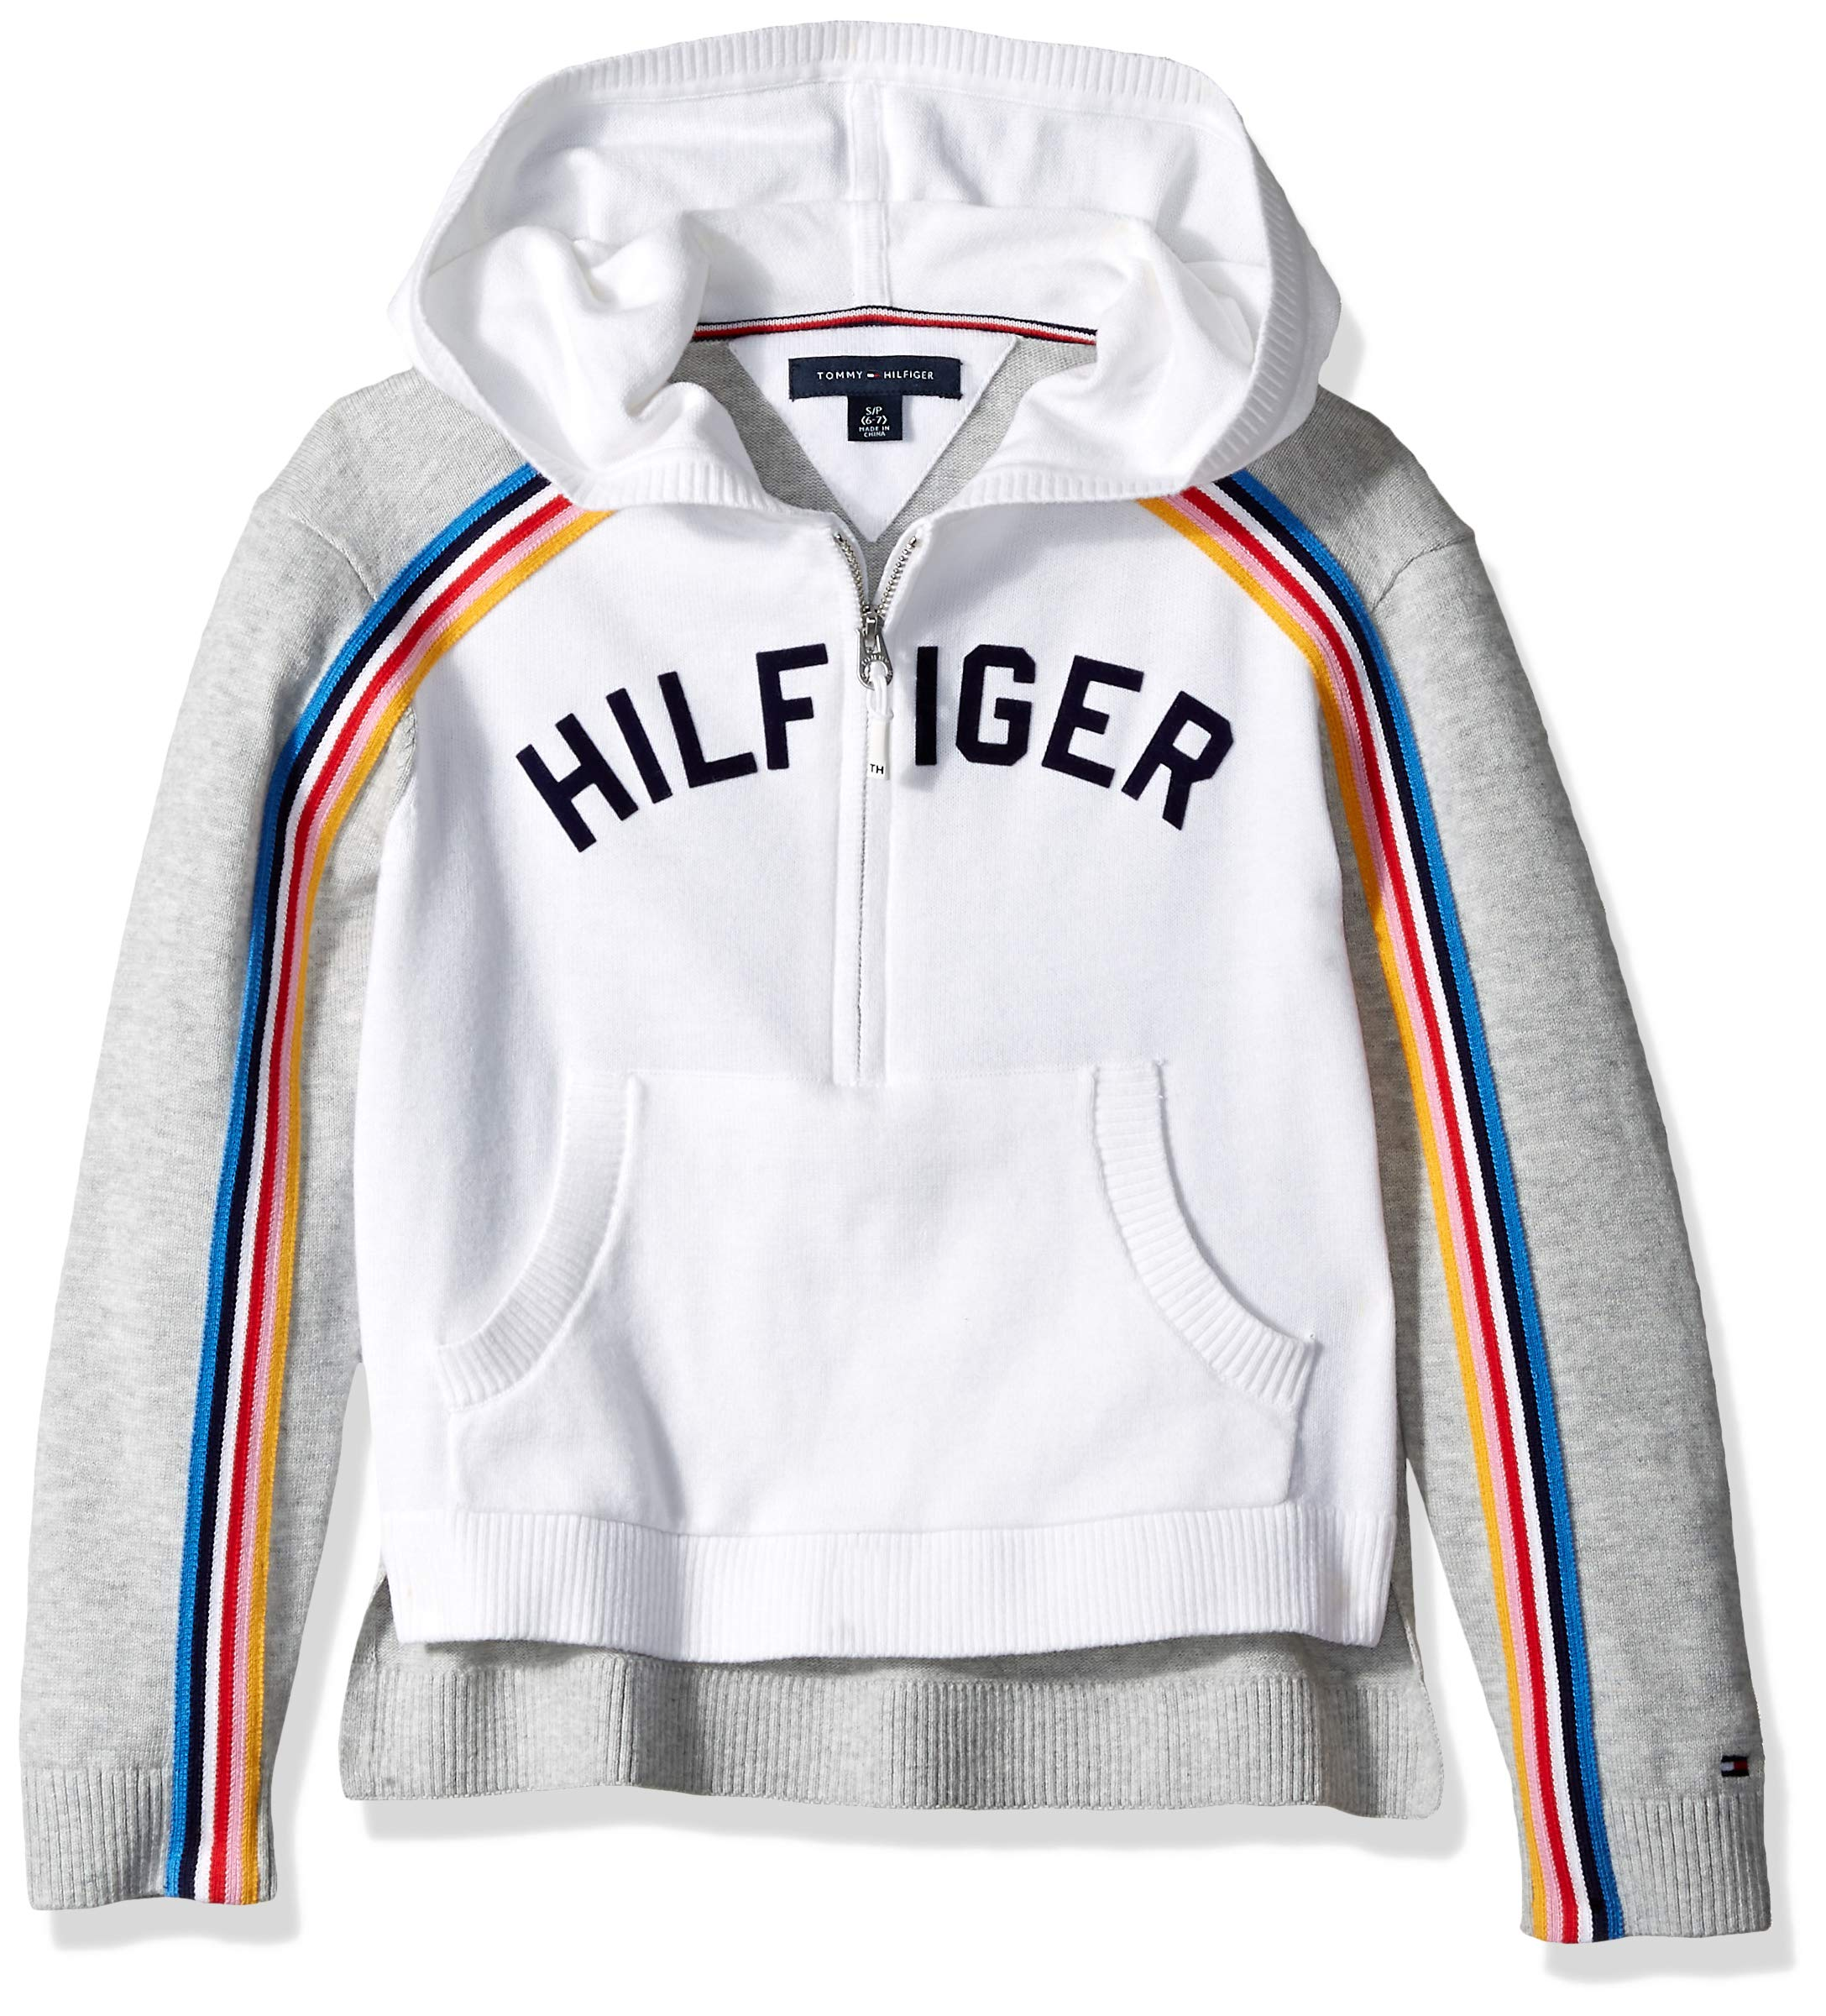 Tommy Hilfiger Girls' Adaptive Hoooed Sweater with Extended Zipper Pull, Heather/Multi XL